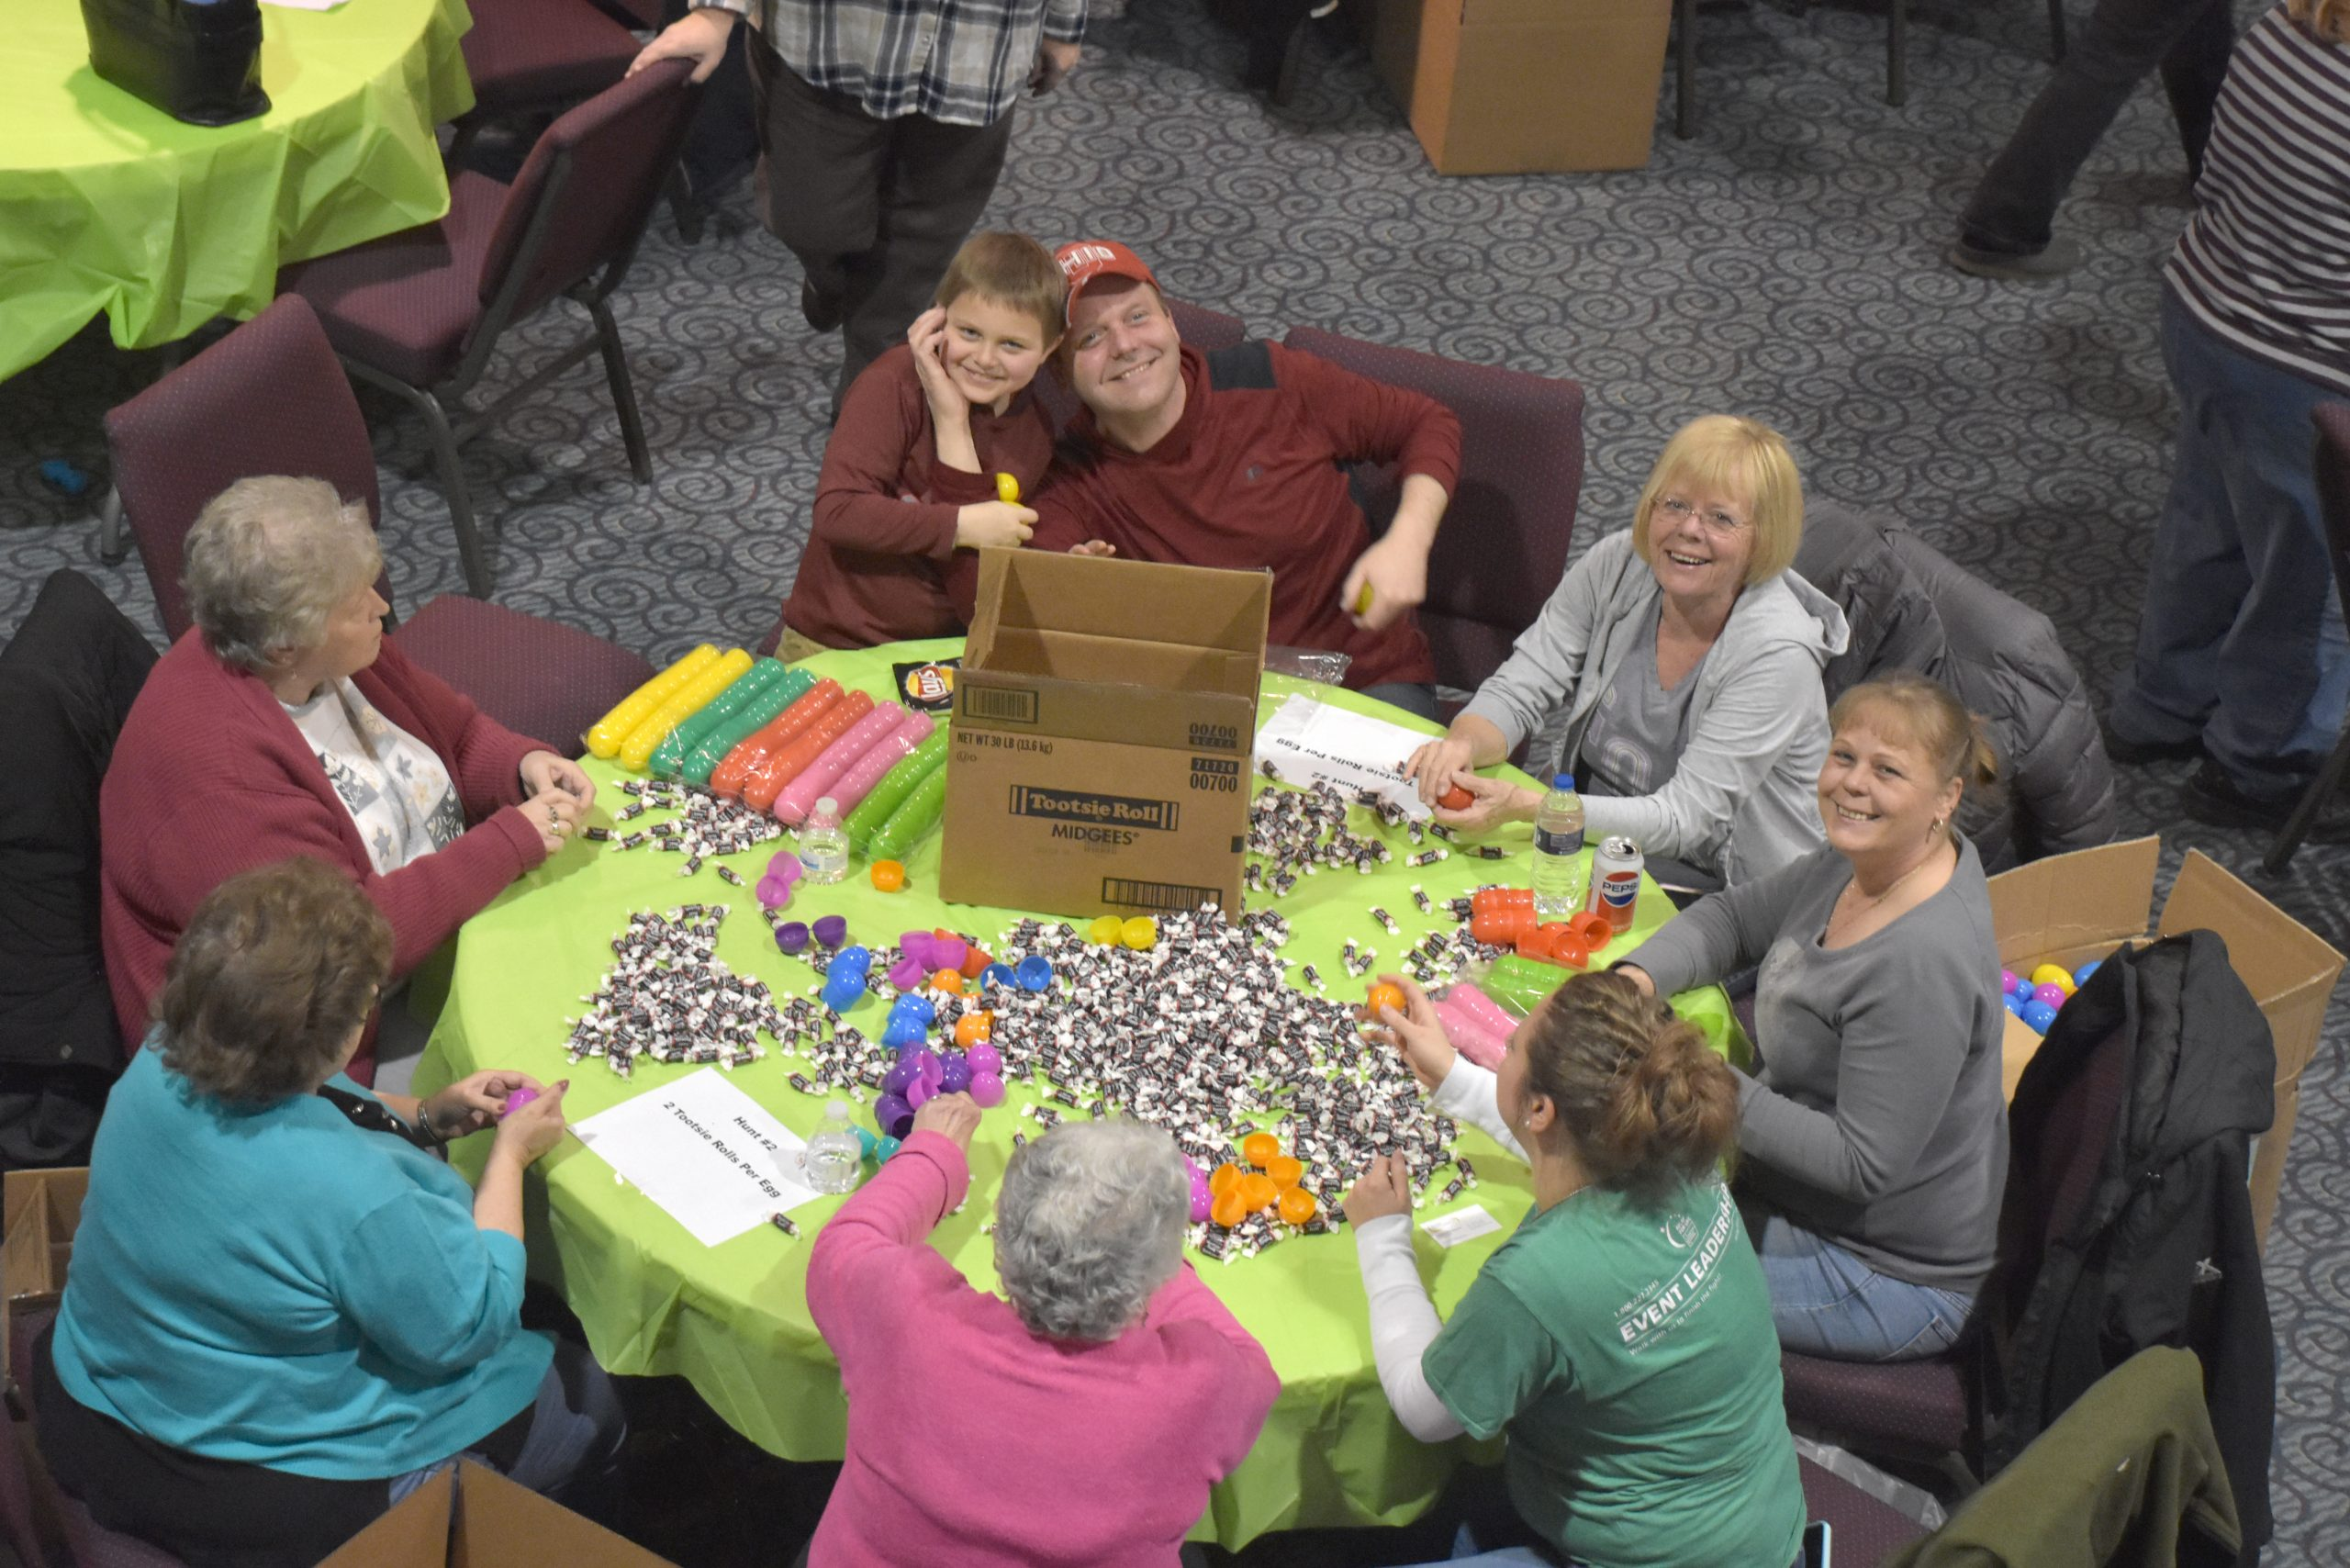 Volunteers stuffing Easter eggs